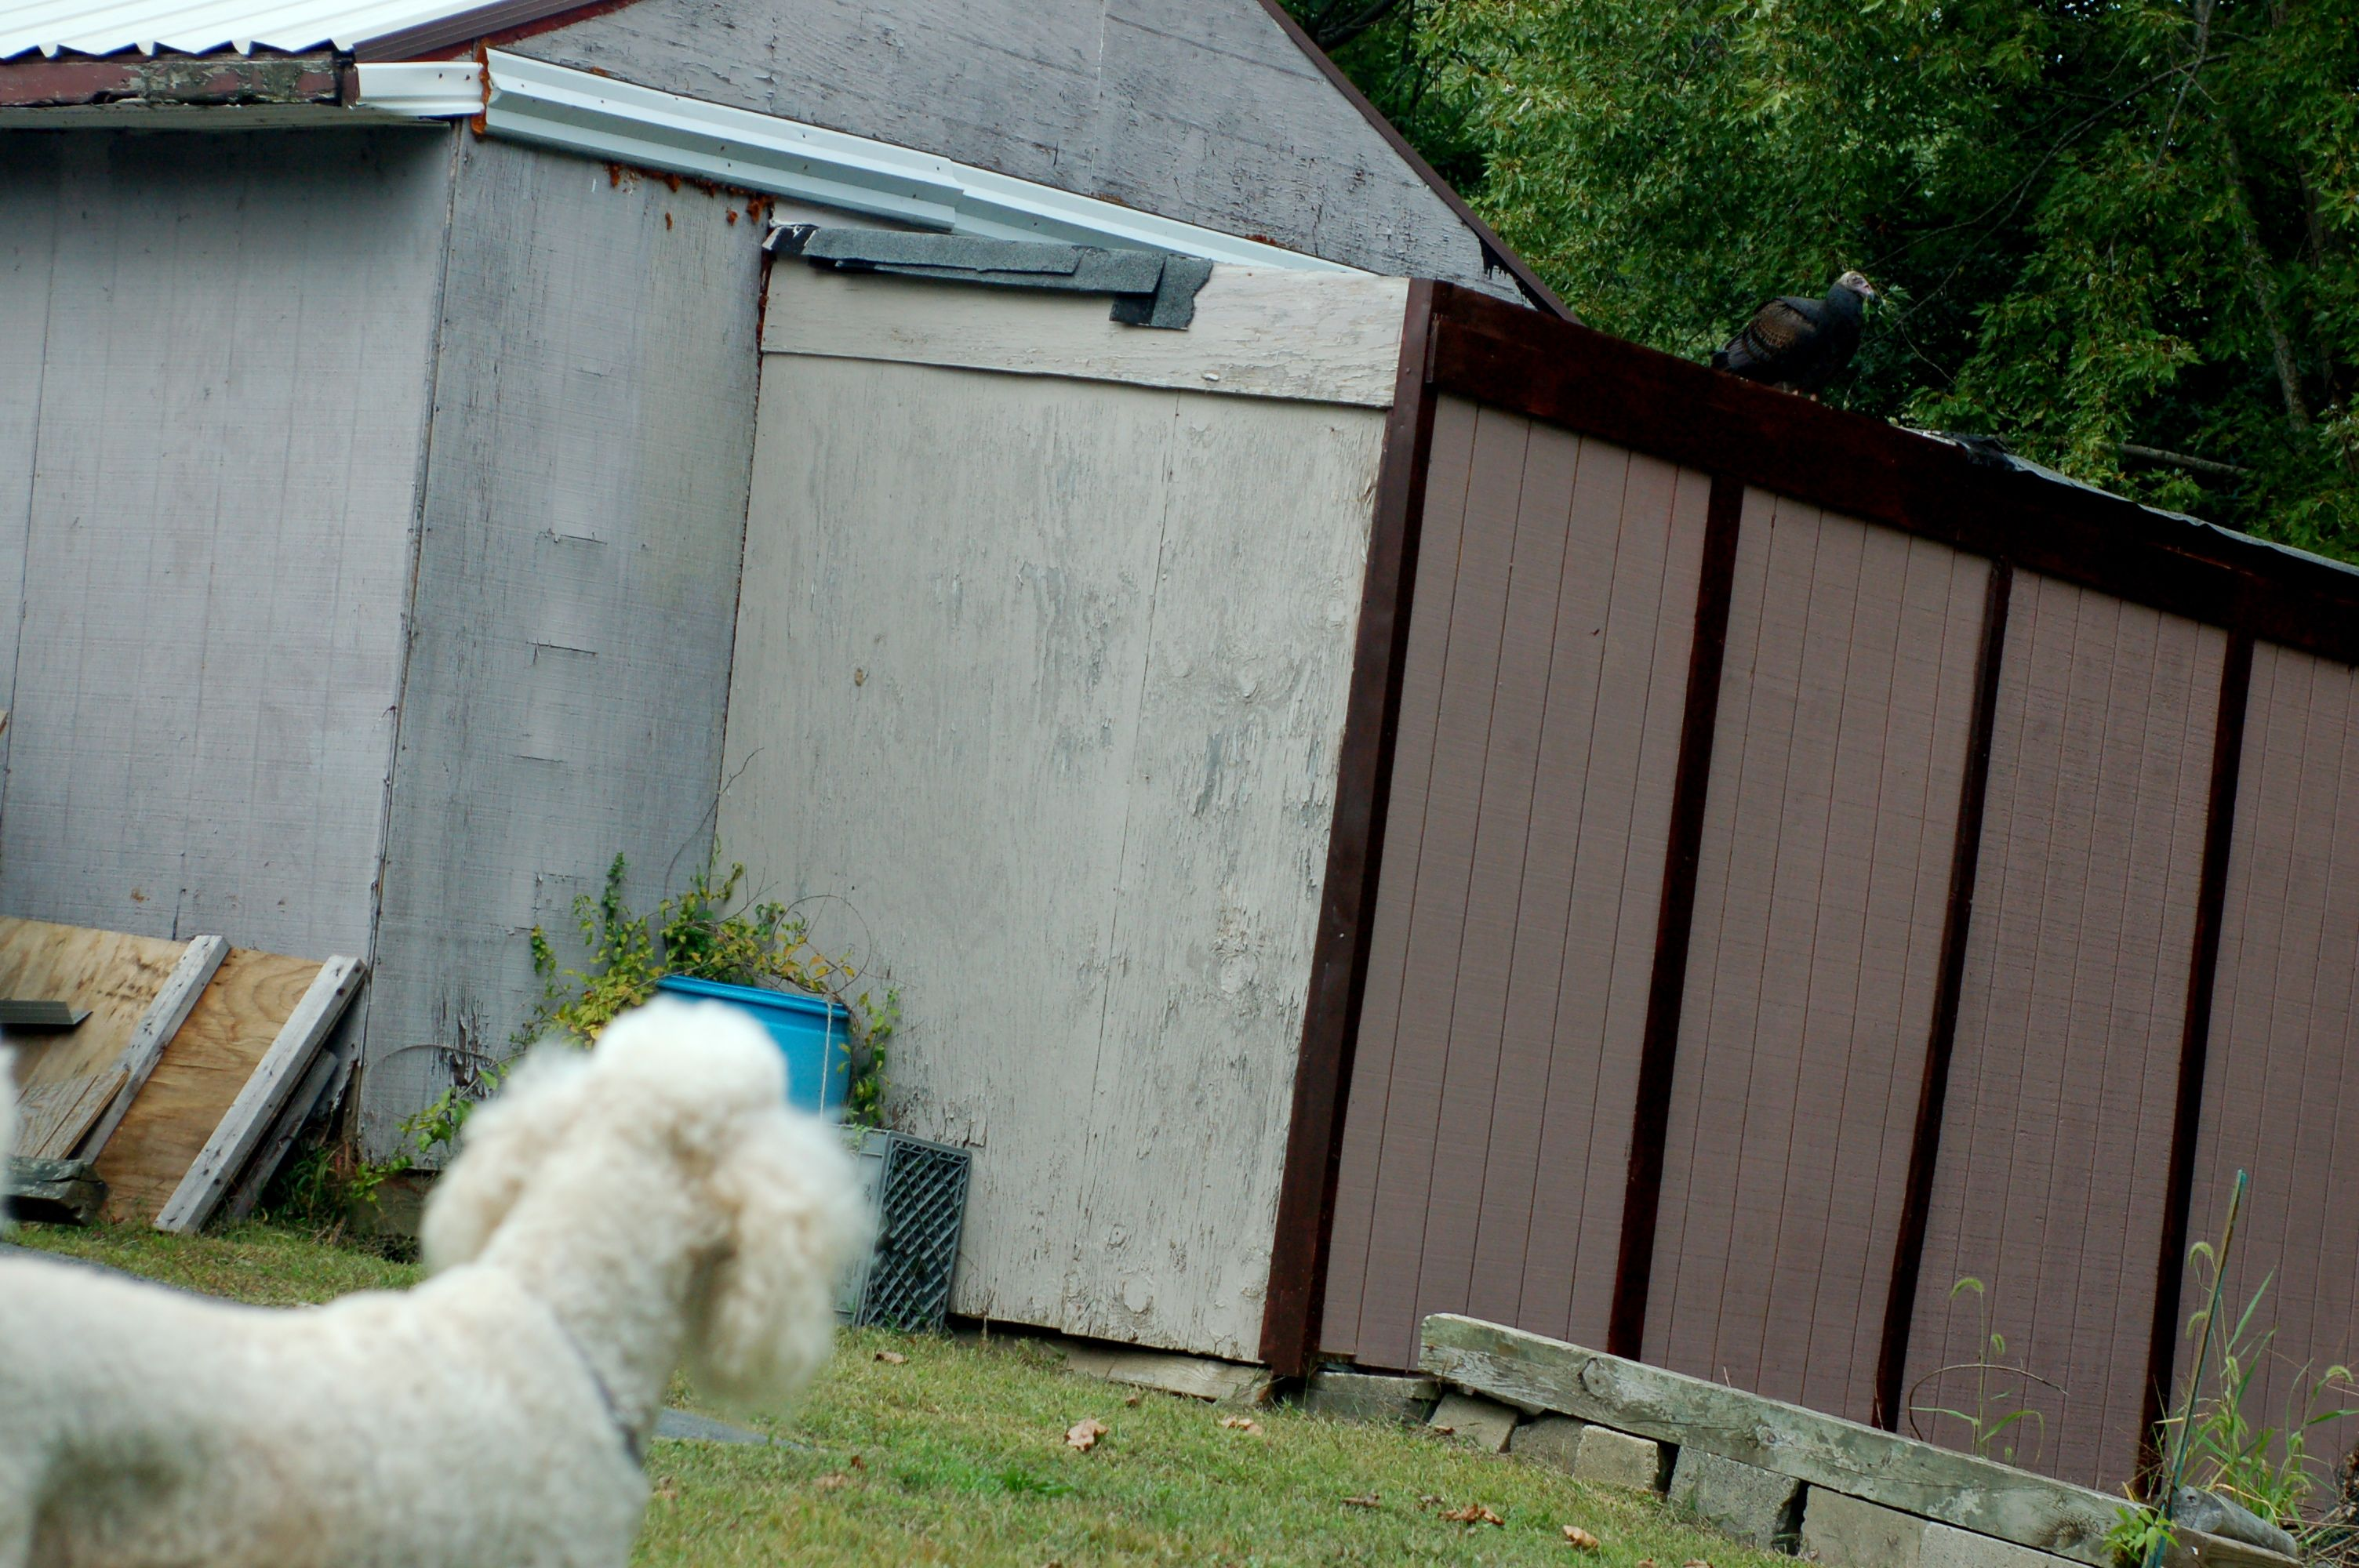 Lacey watching the vulture.